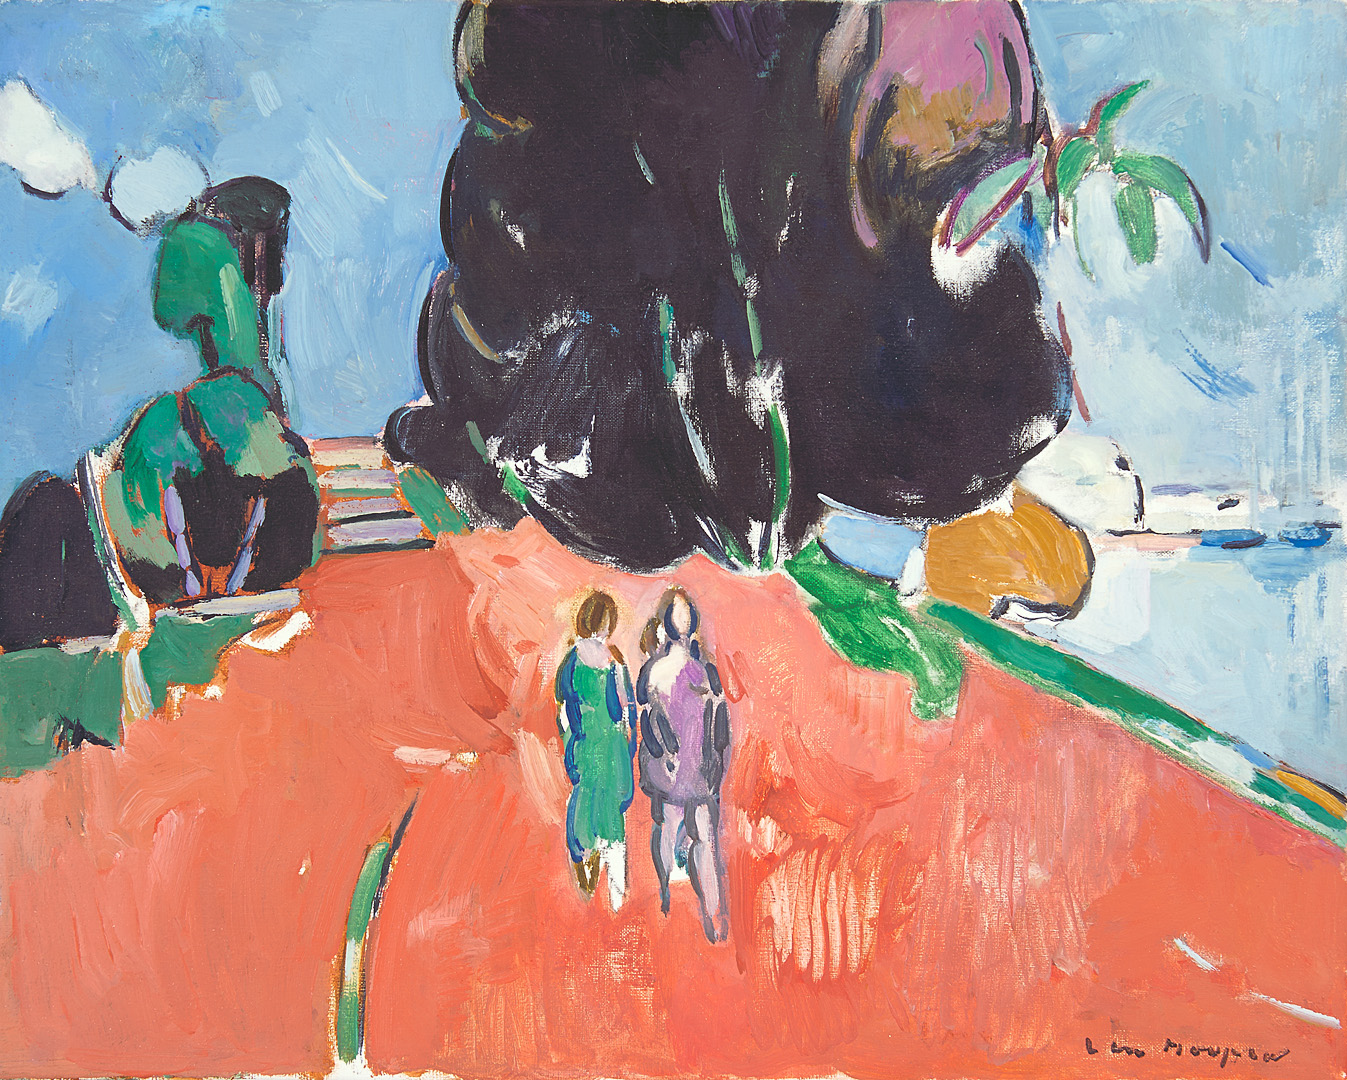 Rivièra-landschap, La Ciotat 1988 Paul Hugo ten Hoopen (1927-) - Kunsthandel Studio 2000